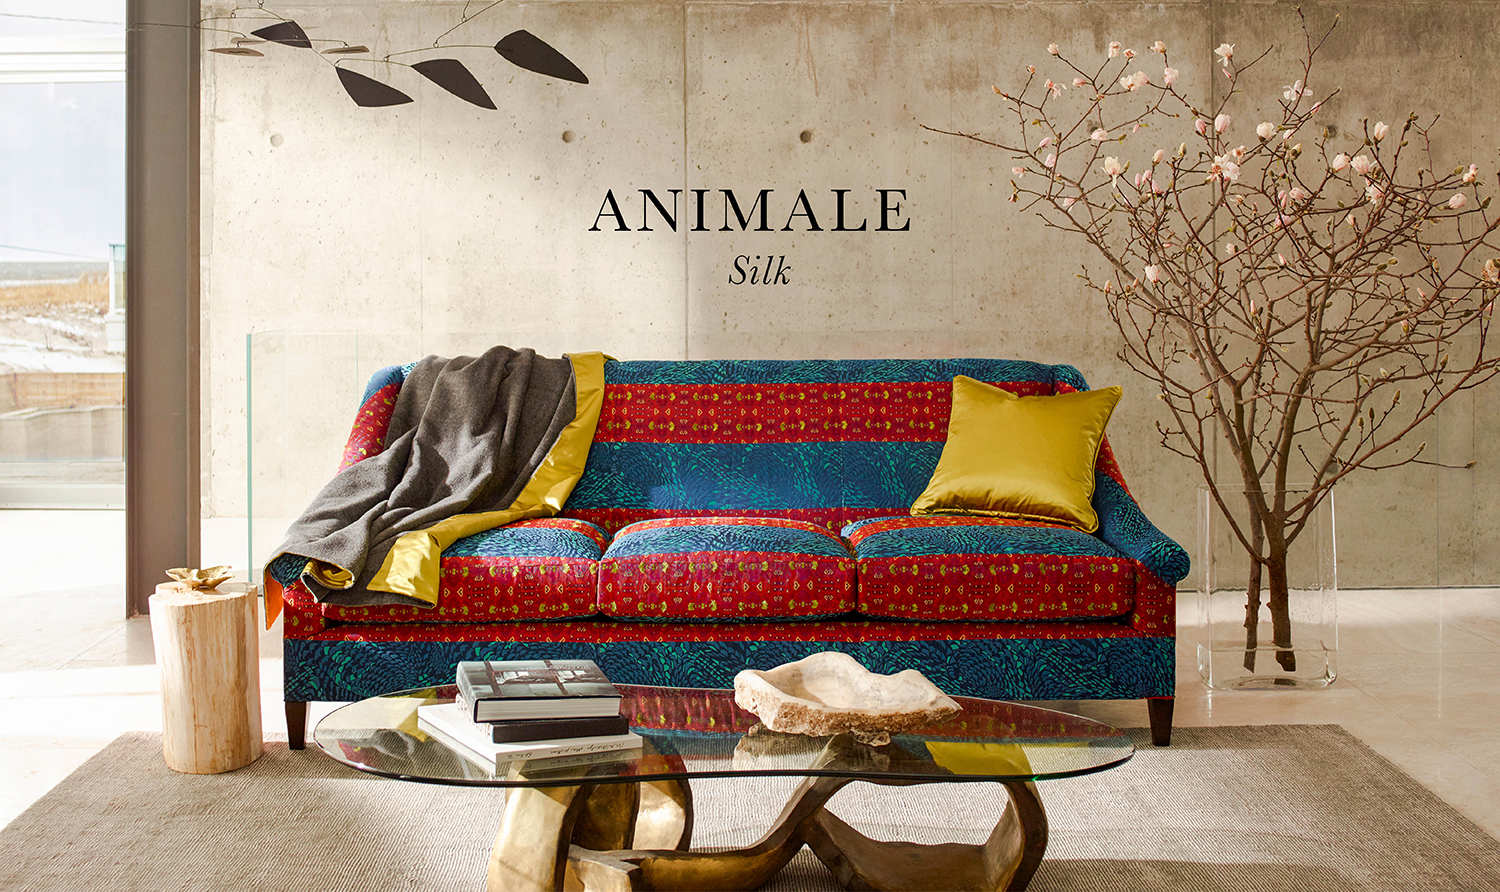 Animale solida Fabric Collection